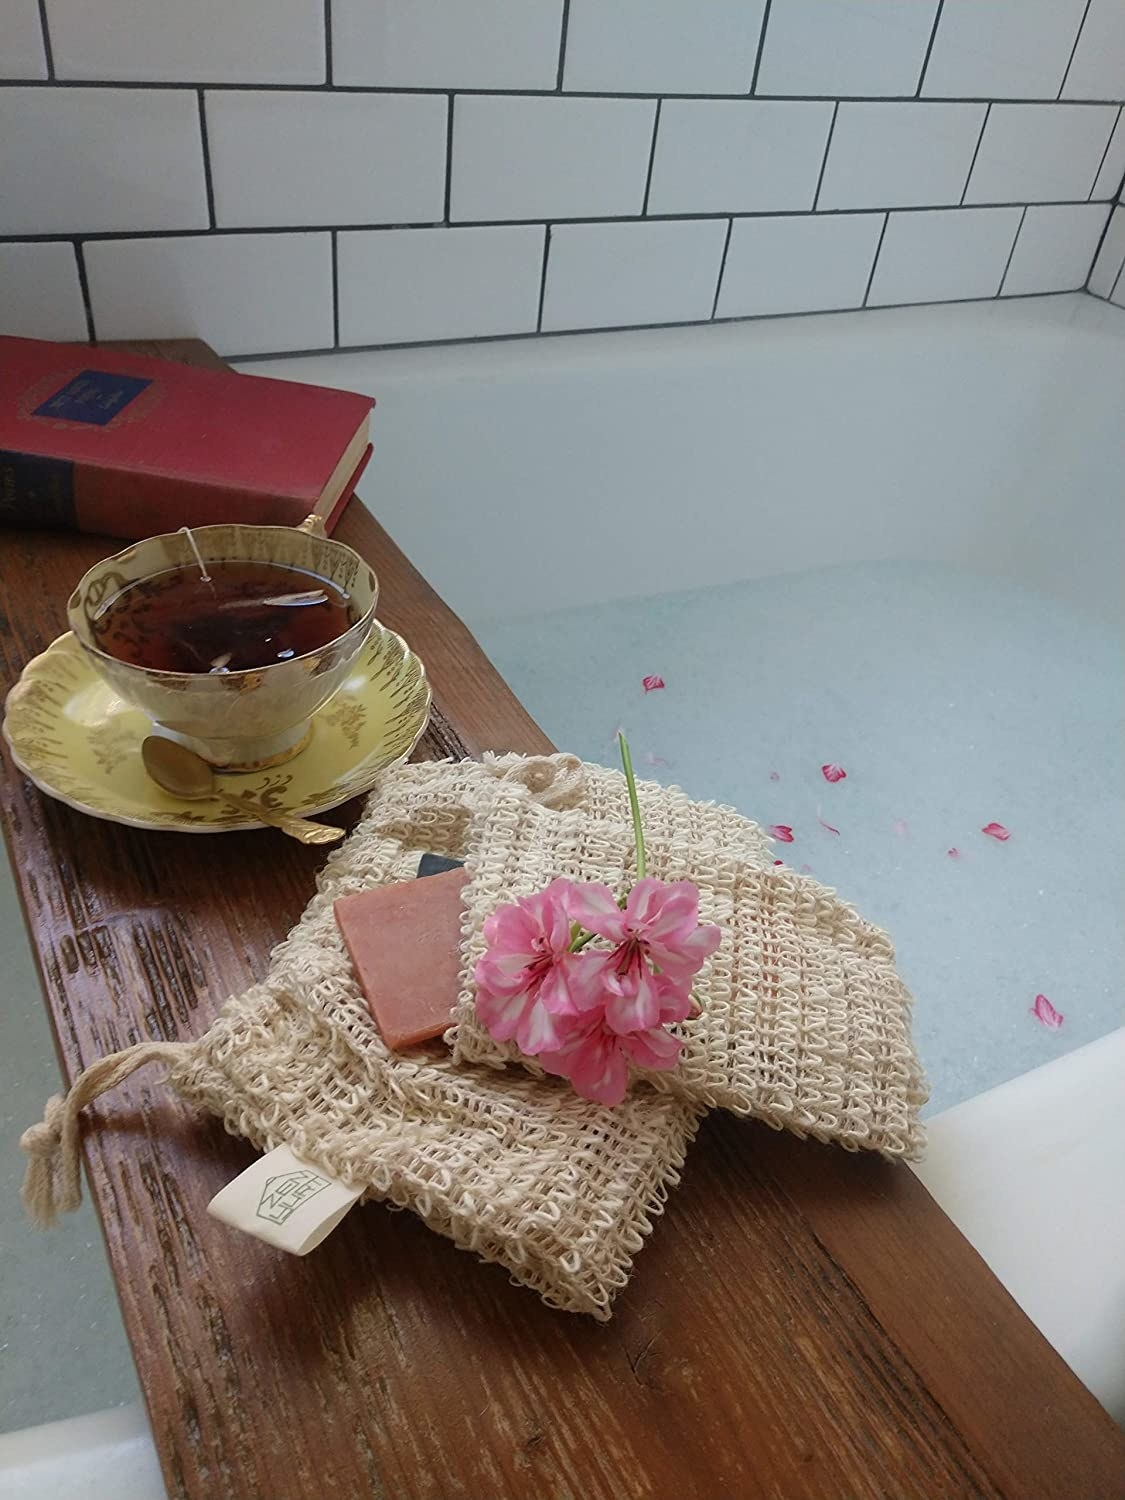 a thick wooden bath tray laid across a tub with a cup of tea, soap, and a book resting on the tray